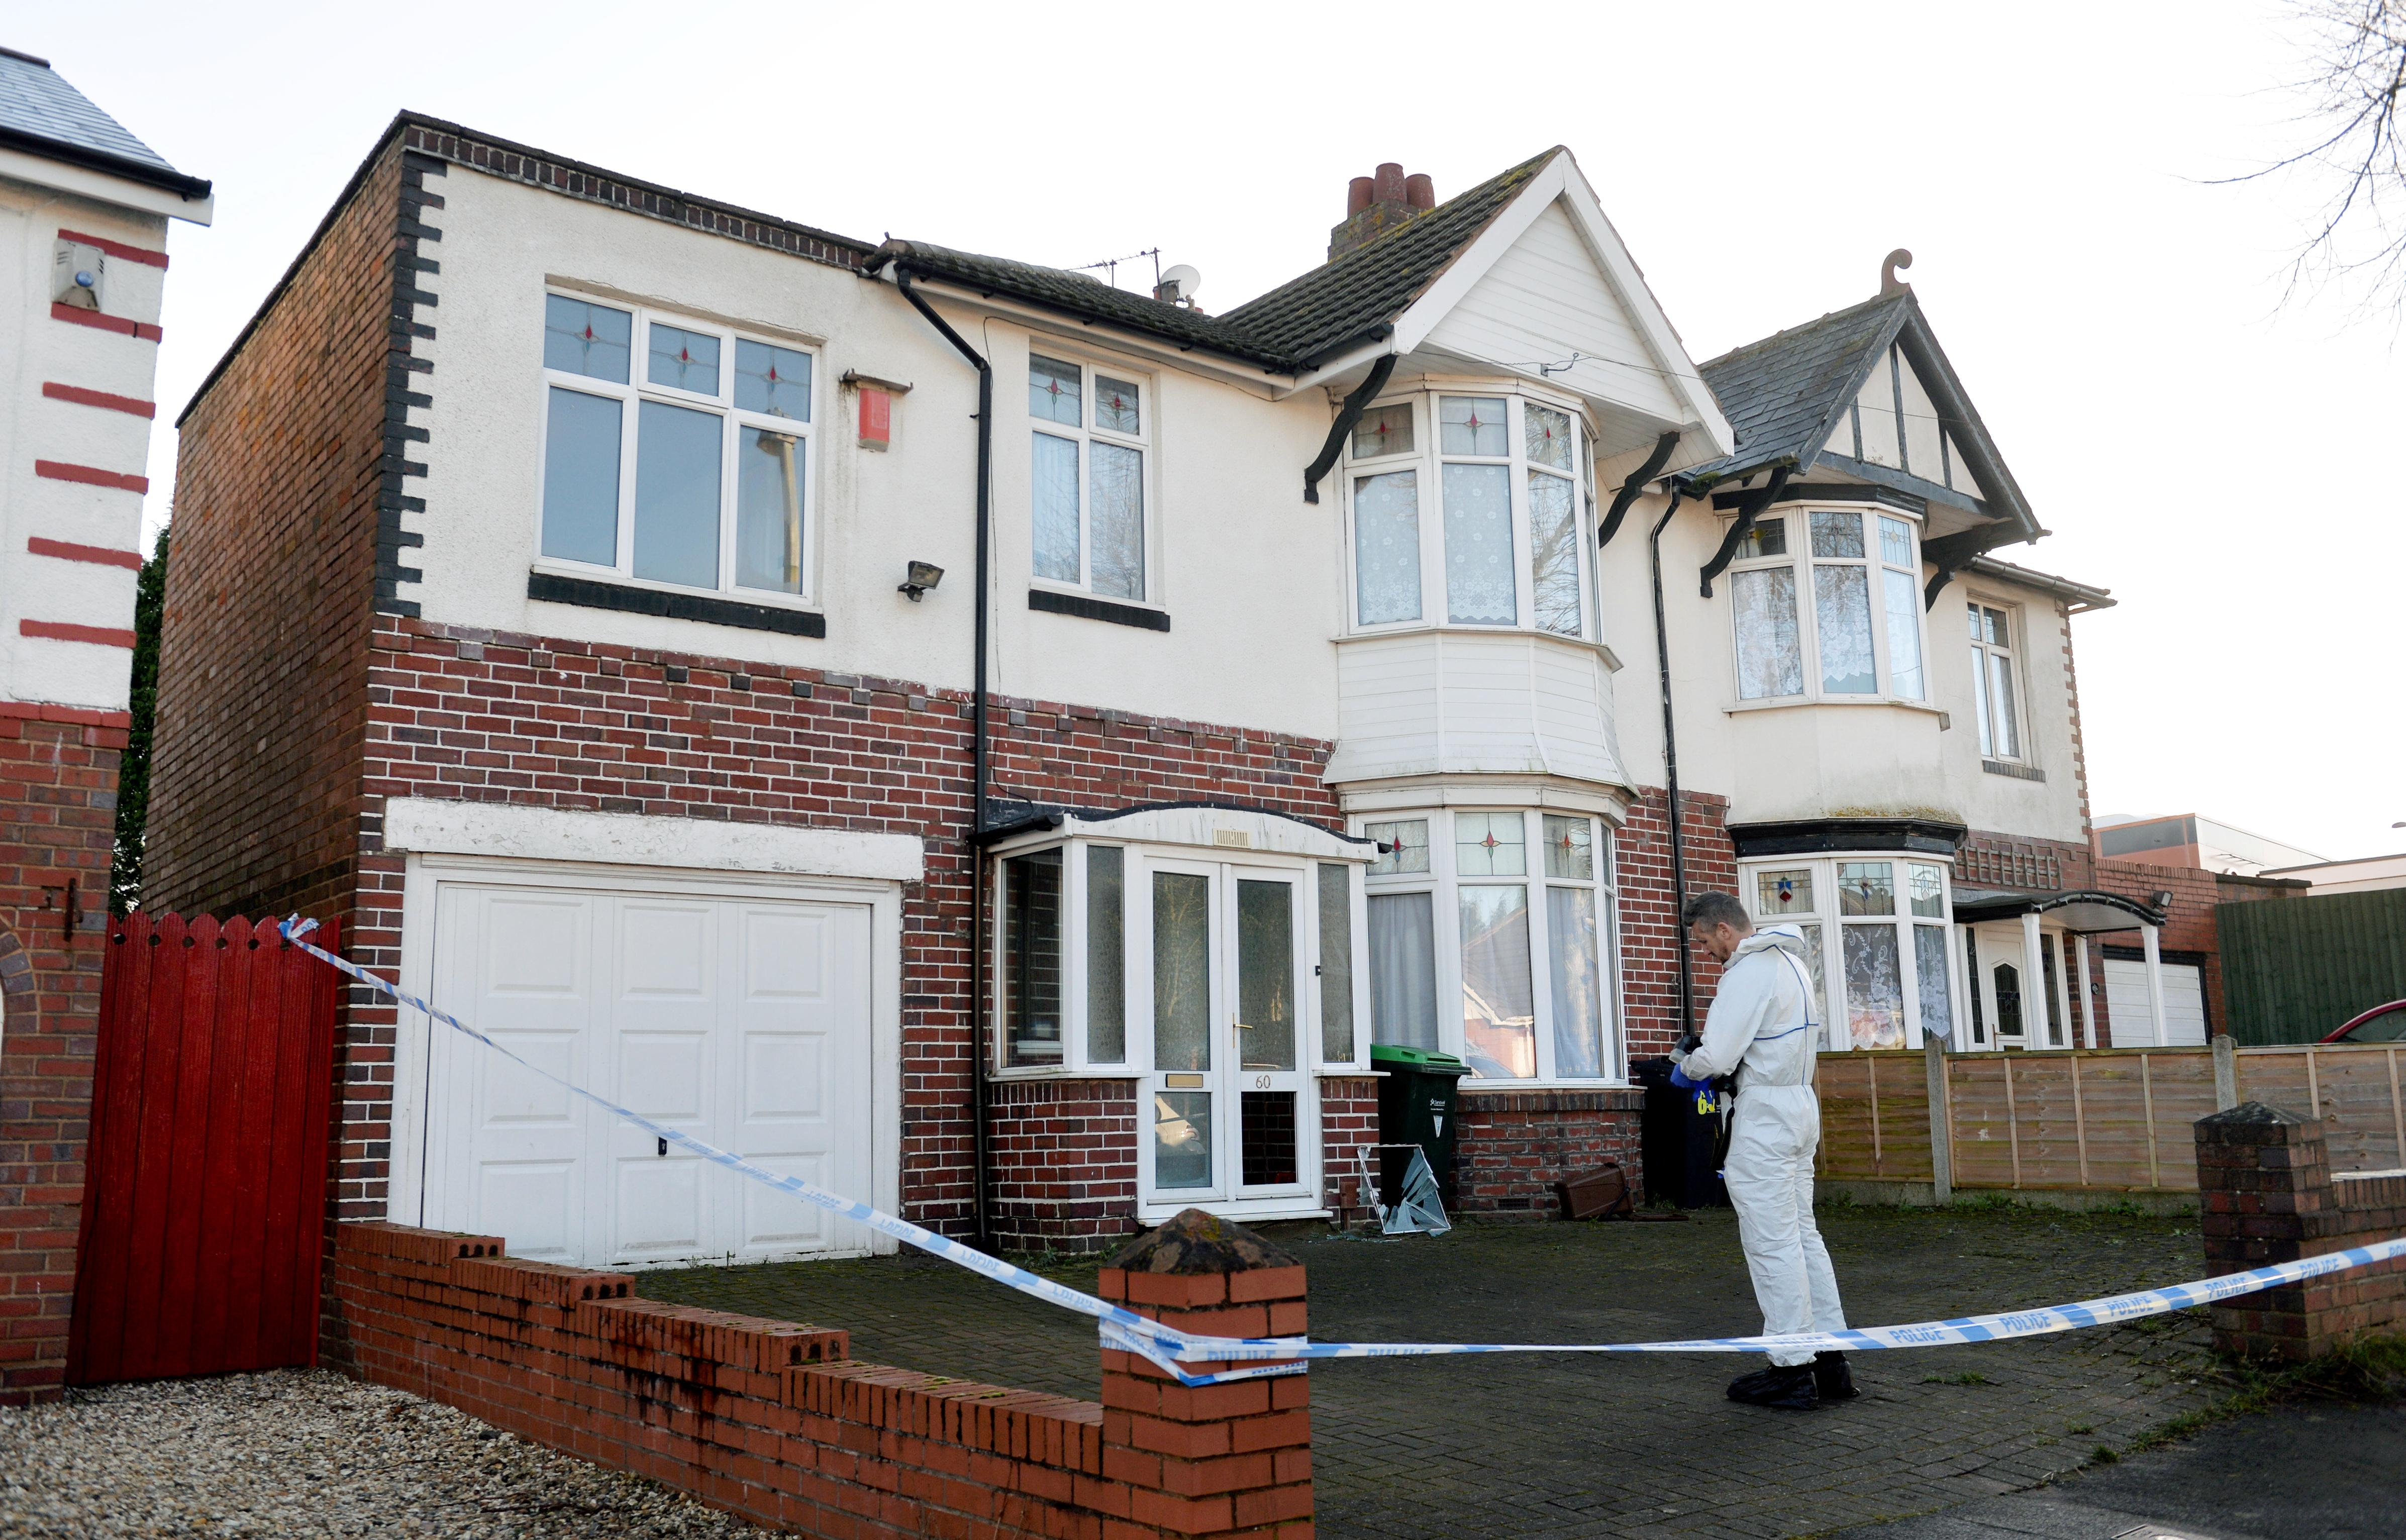 """Police at the scene in Moat Road in Oldbury, West Mids, where the bodies of a middle-aged couple were found in their home this morning. February 25, 2020. See SWNS story SWMDmurders. A 25-year-old man was arrested on suspicion of double murder today (Tues) after the bodies of a middle-aged couple were found in their home. Police officers forced their way into a house in Moat Road in Oldbury, West Mids., at 4am after receiving calls regarding the welfare of the couple. Inside the property officers found the bodies of a woman, 54, and a 52-year-old man who were pronounced dead at the scene. At 5.30am detectives arrested a 25-year-old man at an address in nearby Smethwick. Police are not confirming if the man was the victims' parents but say they are treating the murders as a """"domestic-related incident"""". A West Midlands Police spokesperson said: """"We've arrested a man on suspicion of murder after the bodies of two people were found in Oldbury today."""